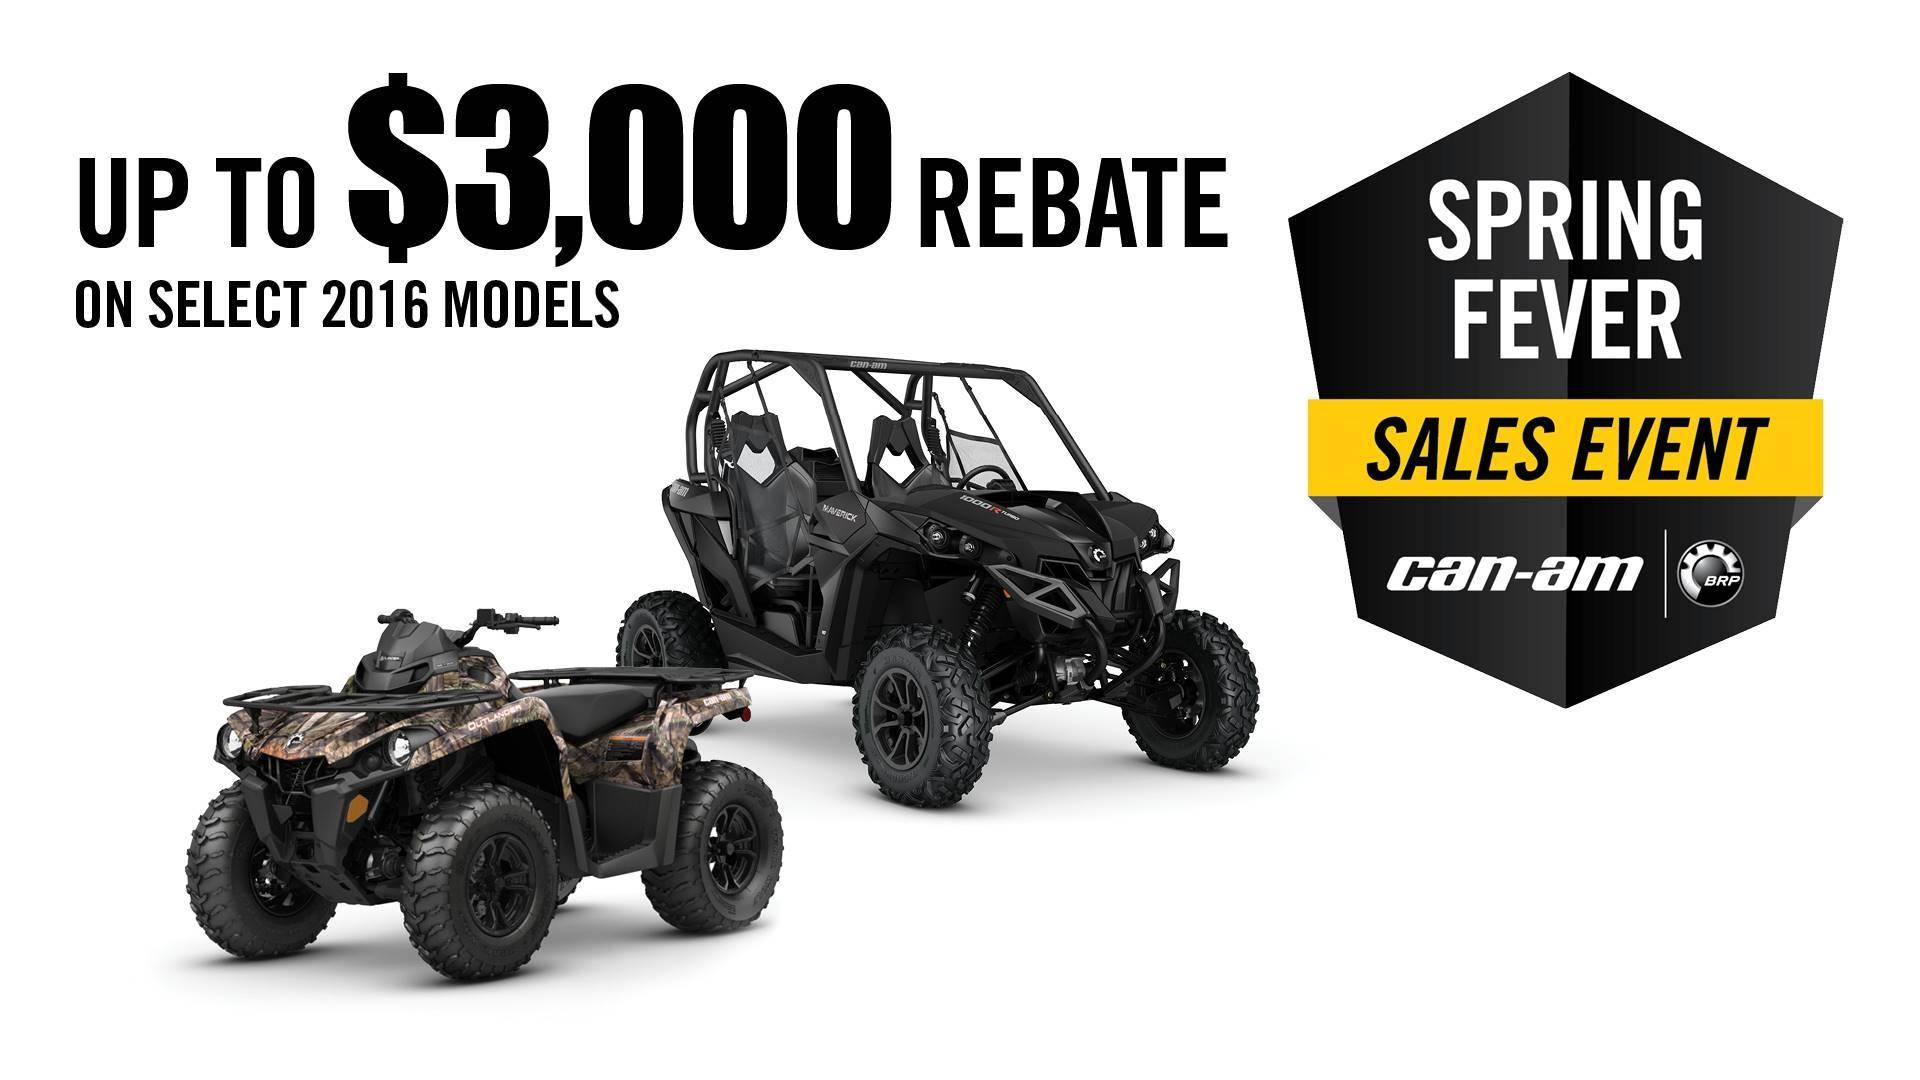 Can-Am Spring Fever Sales Event General Offer